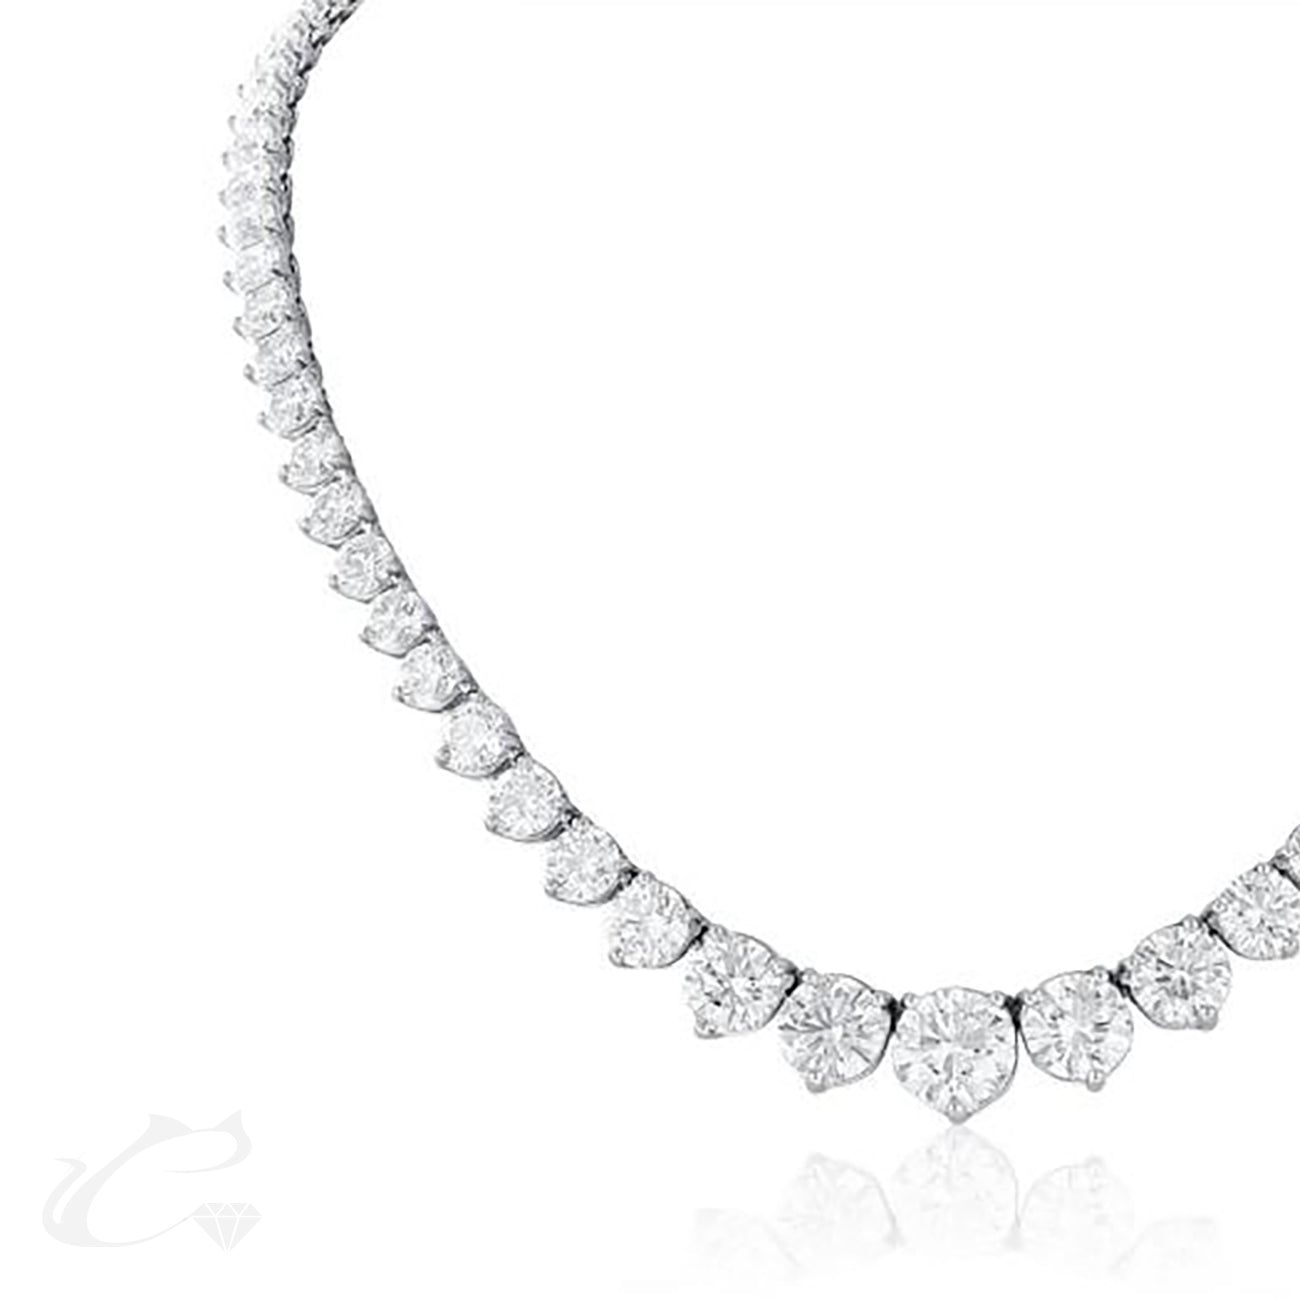 Diamond Riviera Necklace - Small